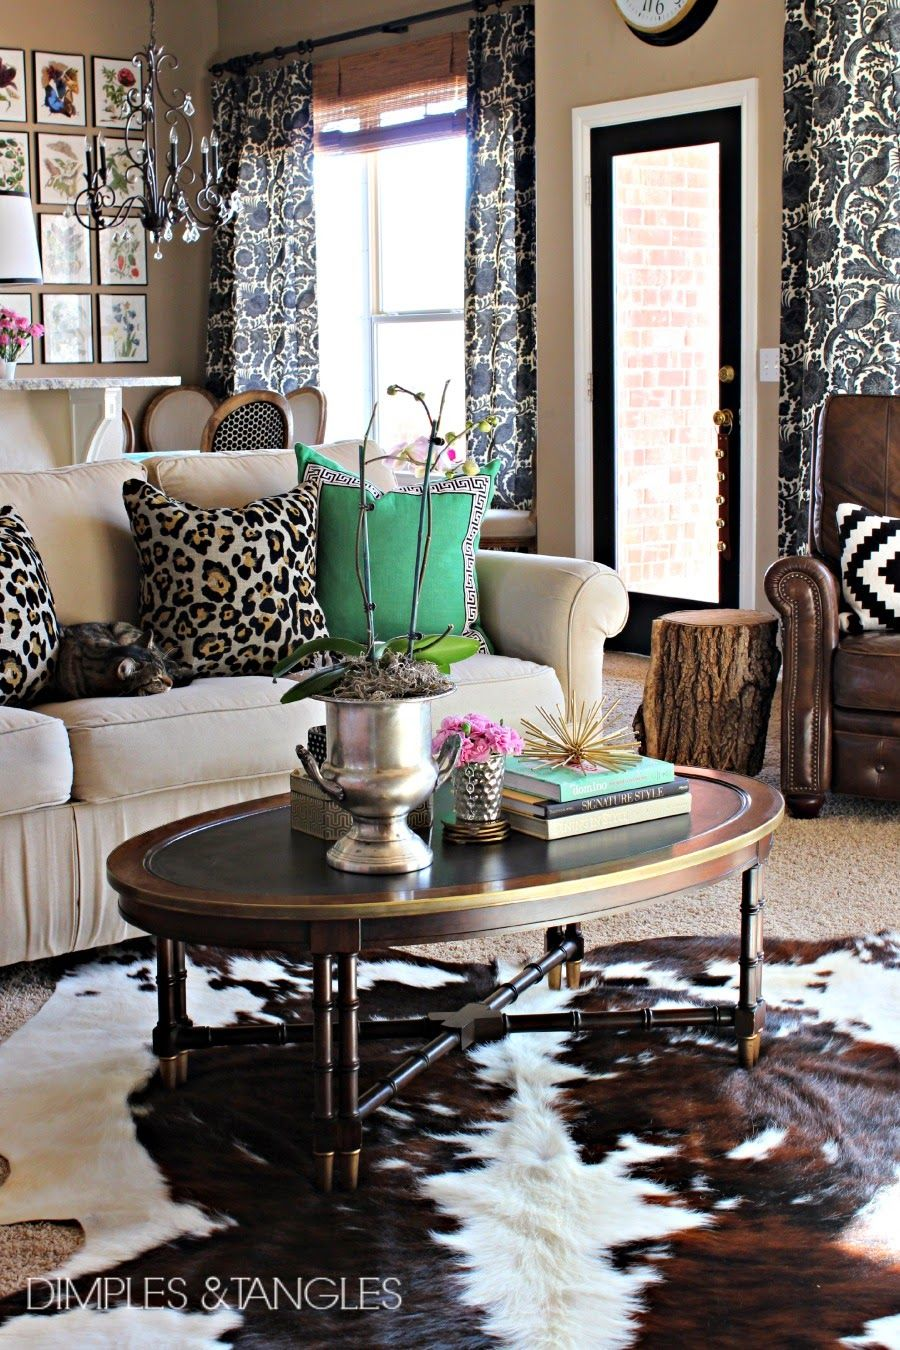 Dimples And Tangles My Thoughts On Cowhide Rugs Home Decor Rugs In Living Room Decor